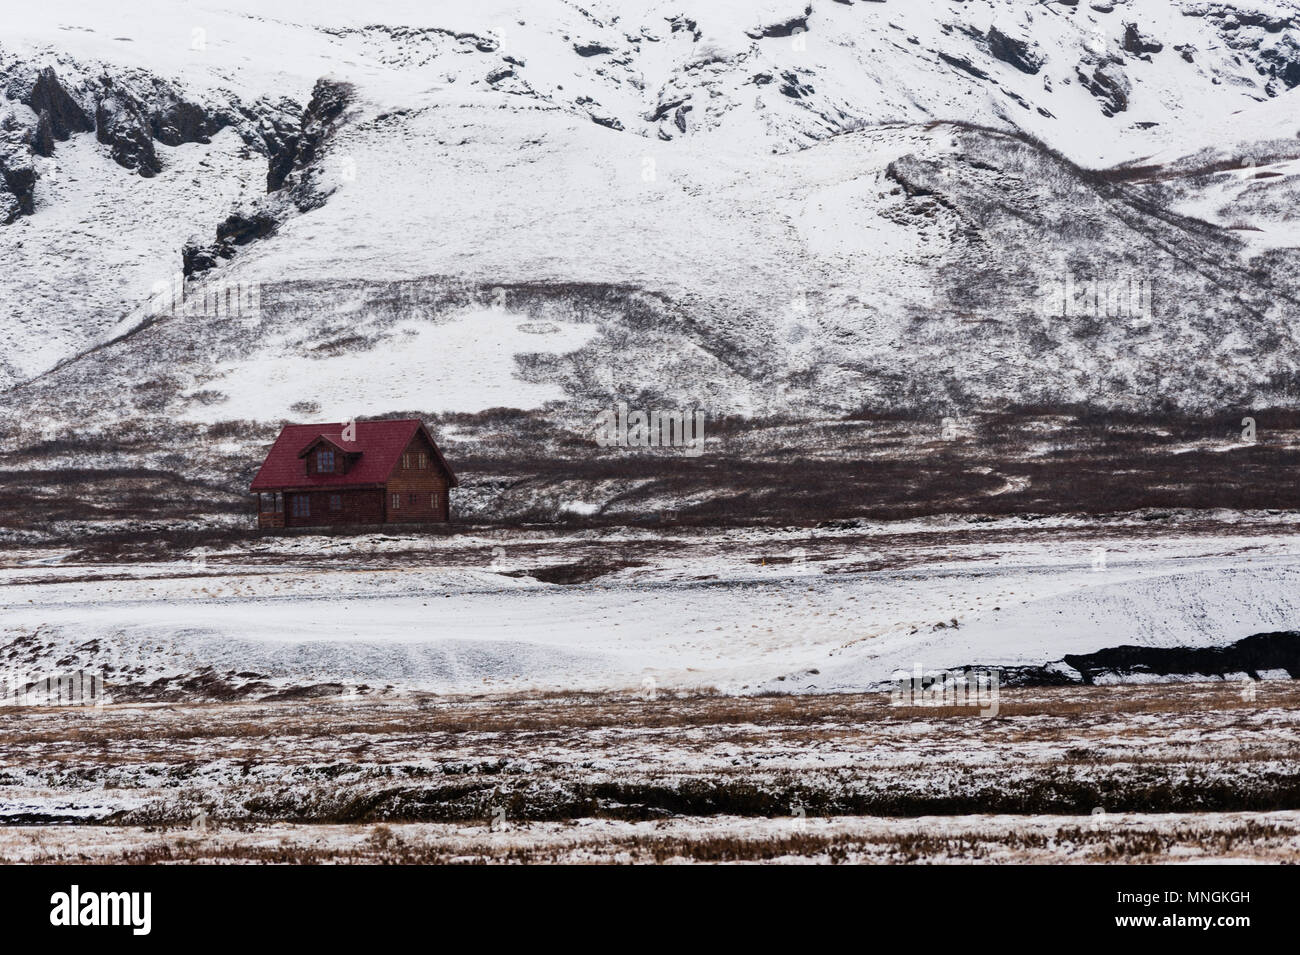 Lonely cabin in the icelandic back country at bad weather, april 2019 - Stock Image